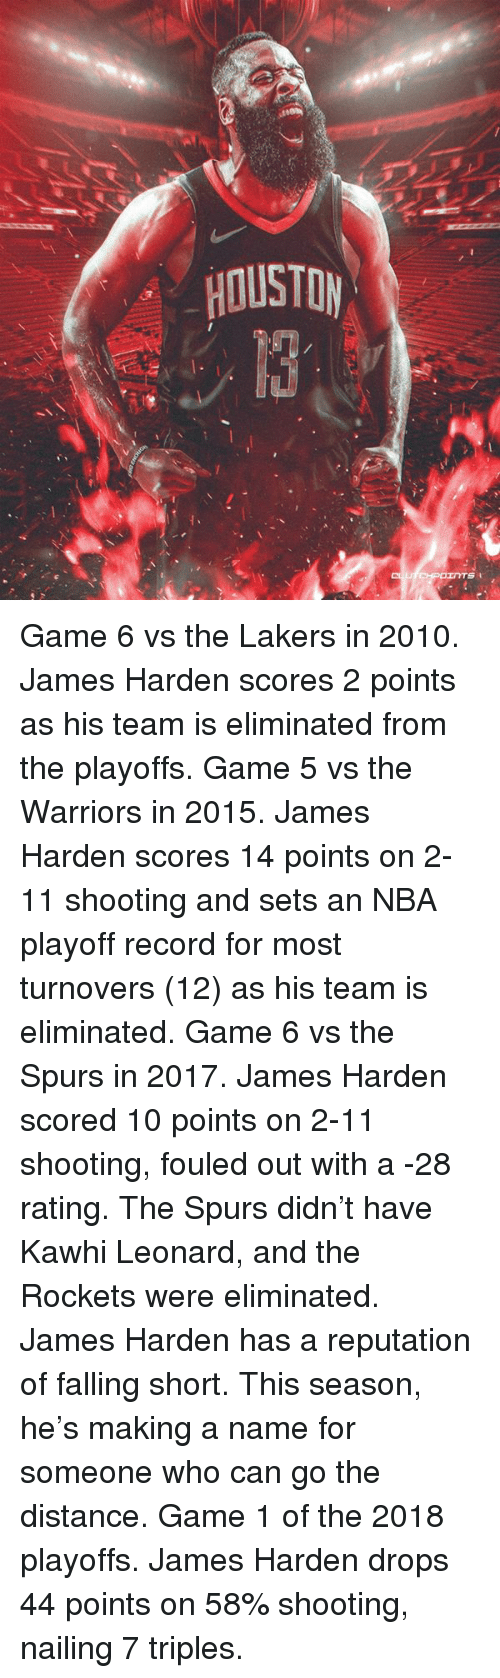 James Harden, Los Angeles Lakers, and Nba: HOUSTOy Game 6 vs the Lakers in 2010. James Harden scores 2 points as his team is eliminated from the playoffs.   Game 5 vs the Warriors in 2015. James Harden scores 14 points on 2-11 shooting and sets an NBA playoff record for most turnovers (12) as his team is eliminated.   Game 6 vs the Spurs in 2017. James Harden scored 10 points on 2-11 shooting, fouled out with a -28 rating. The Spurs didn't have Kawhi Leonard, and the Rockets were eliminated.   James Harden has a reputation of falling short. This season, he's making a name for someone who can go the distance.   Game 1 of the 2018 playoffs. James Harden drops 44 points on 58% shooting, nailing 7 triples.